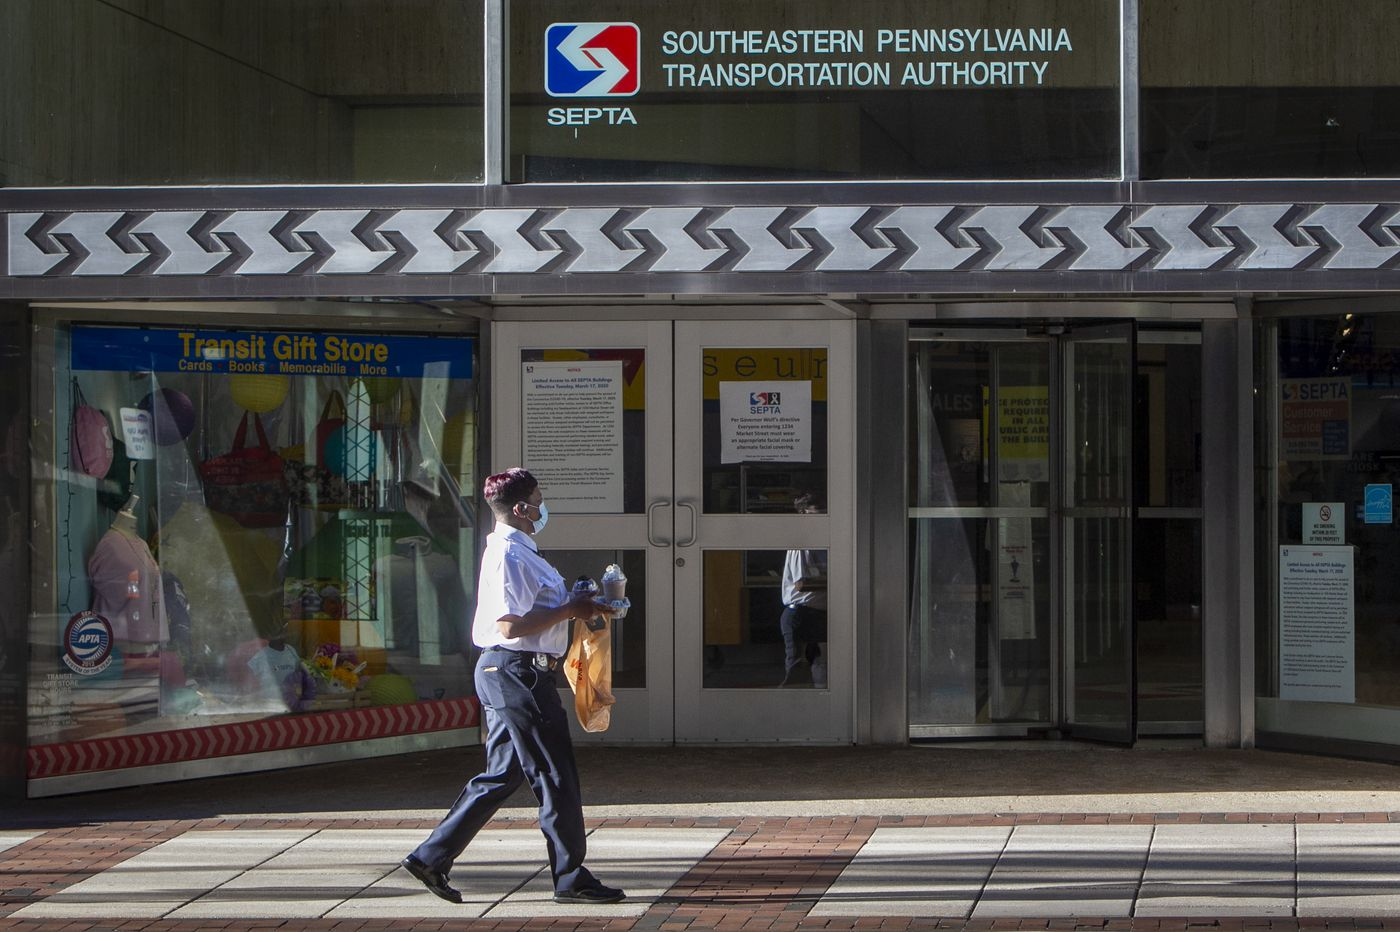 SEPTA employee info, including Social Security numbers and bank accounts, possibly compromised during malware attack